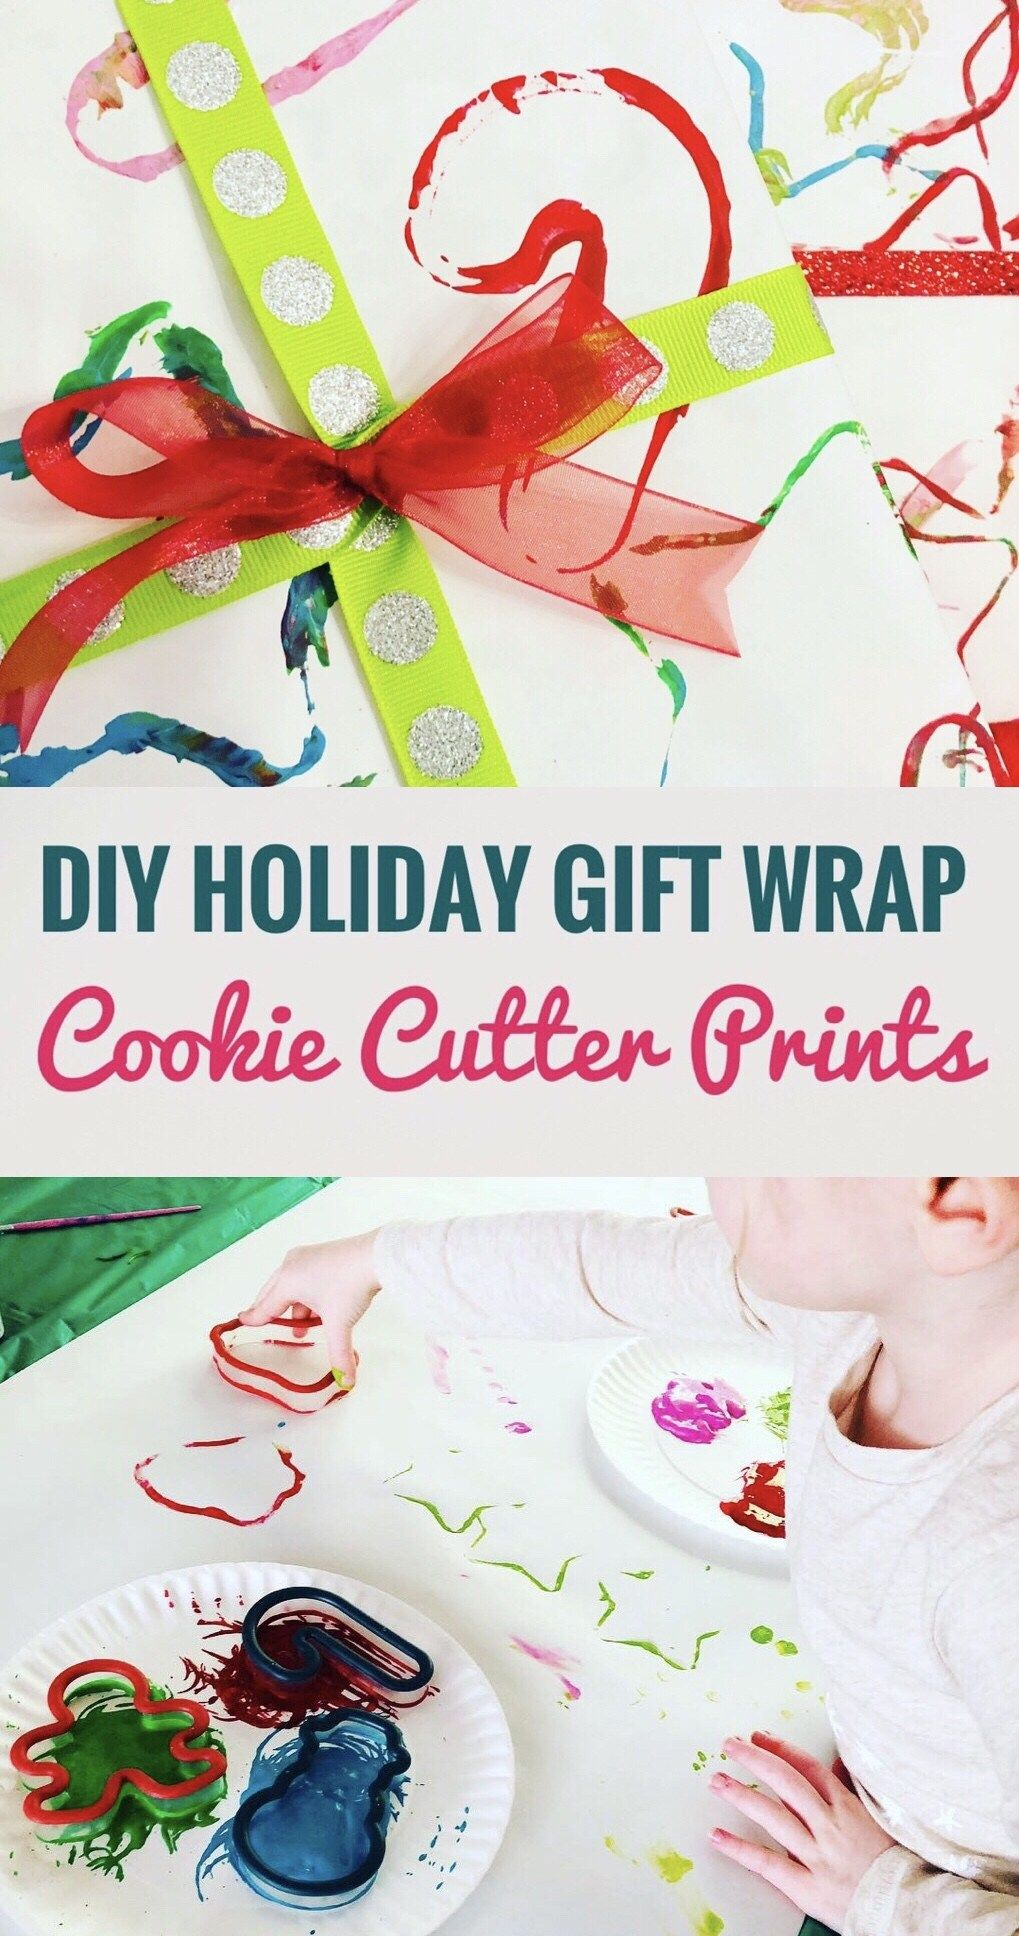 Diy Holiday Gift Wrap Cookie Cutter Prints Creative Kids